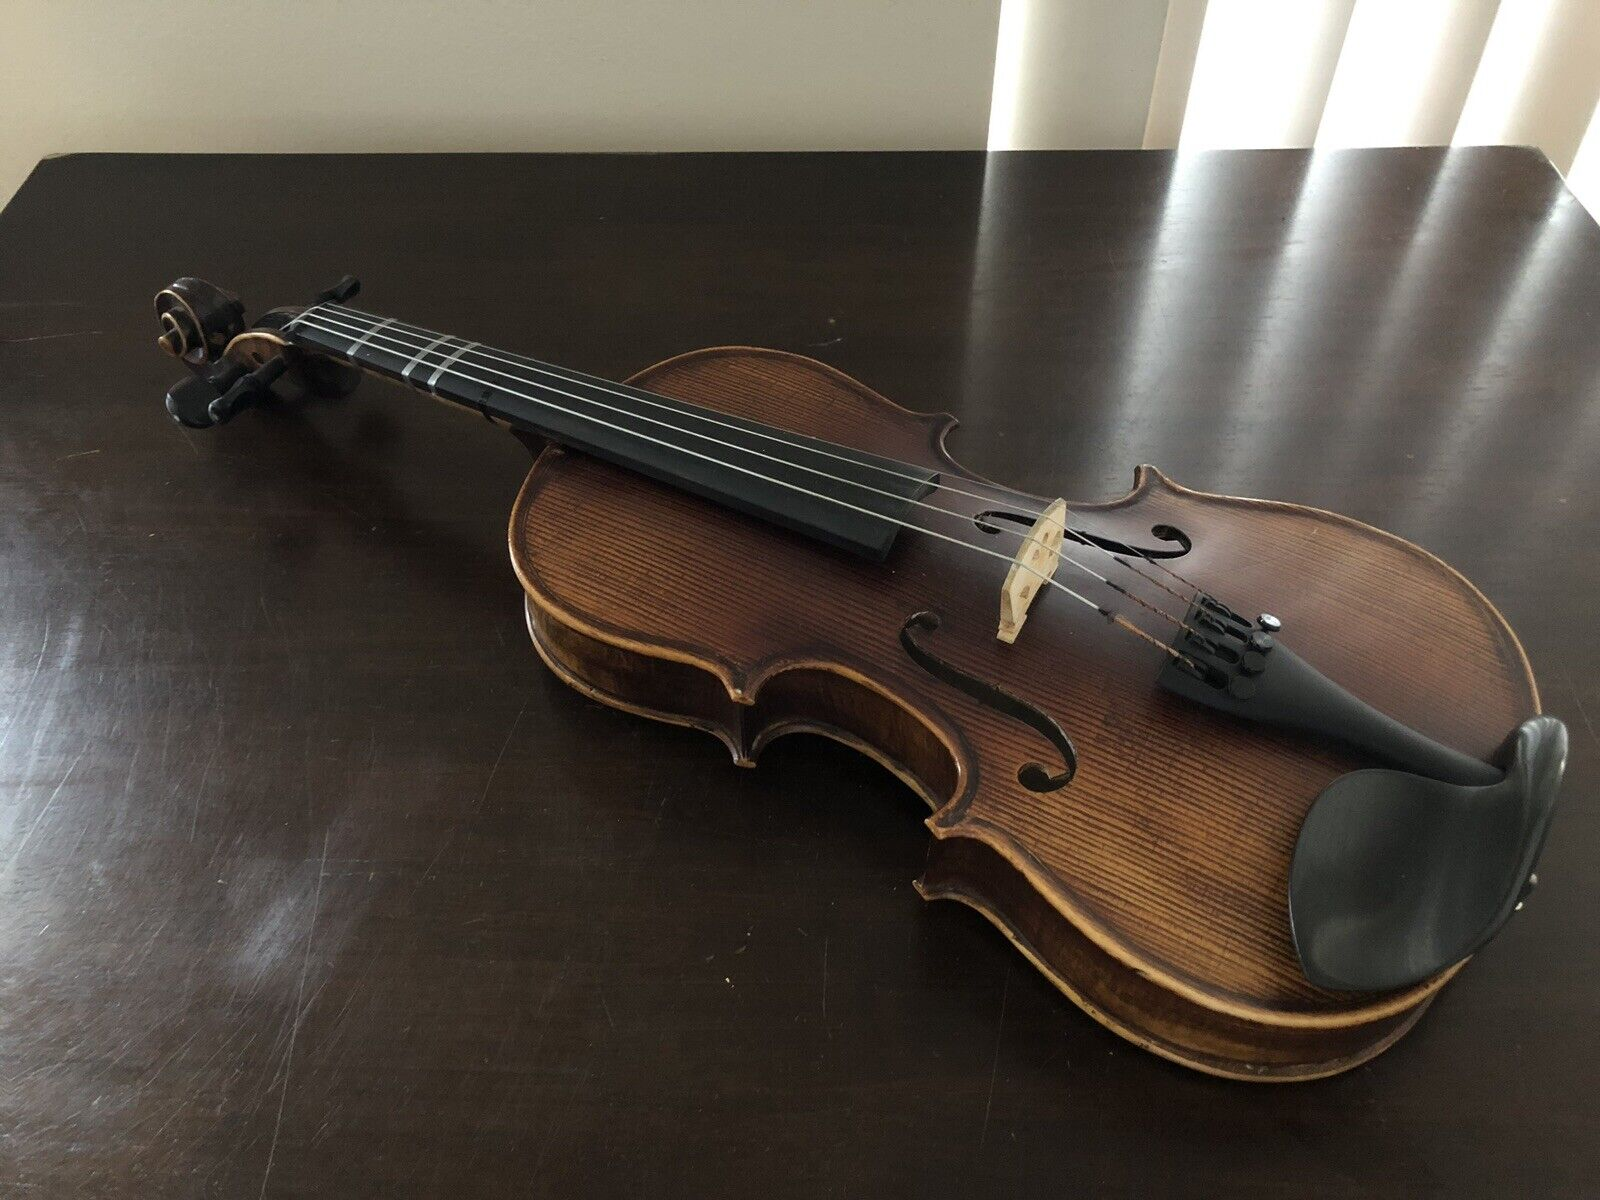 Florea Prodigy Violin 0323 3 4 Größe (Used) with Accessories